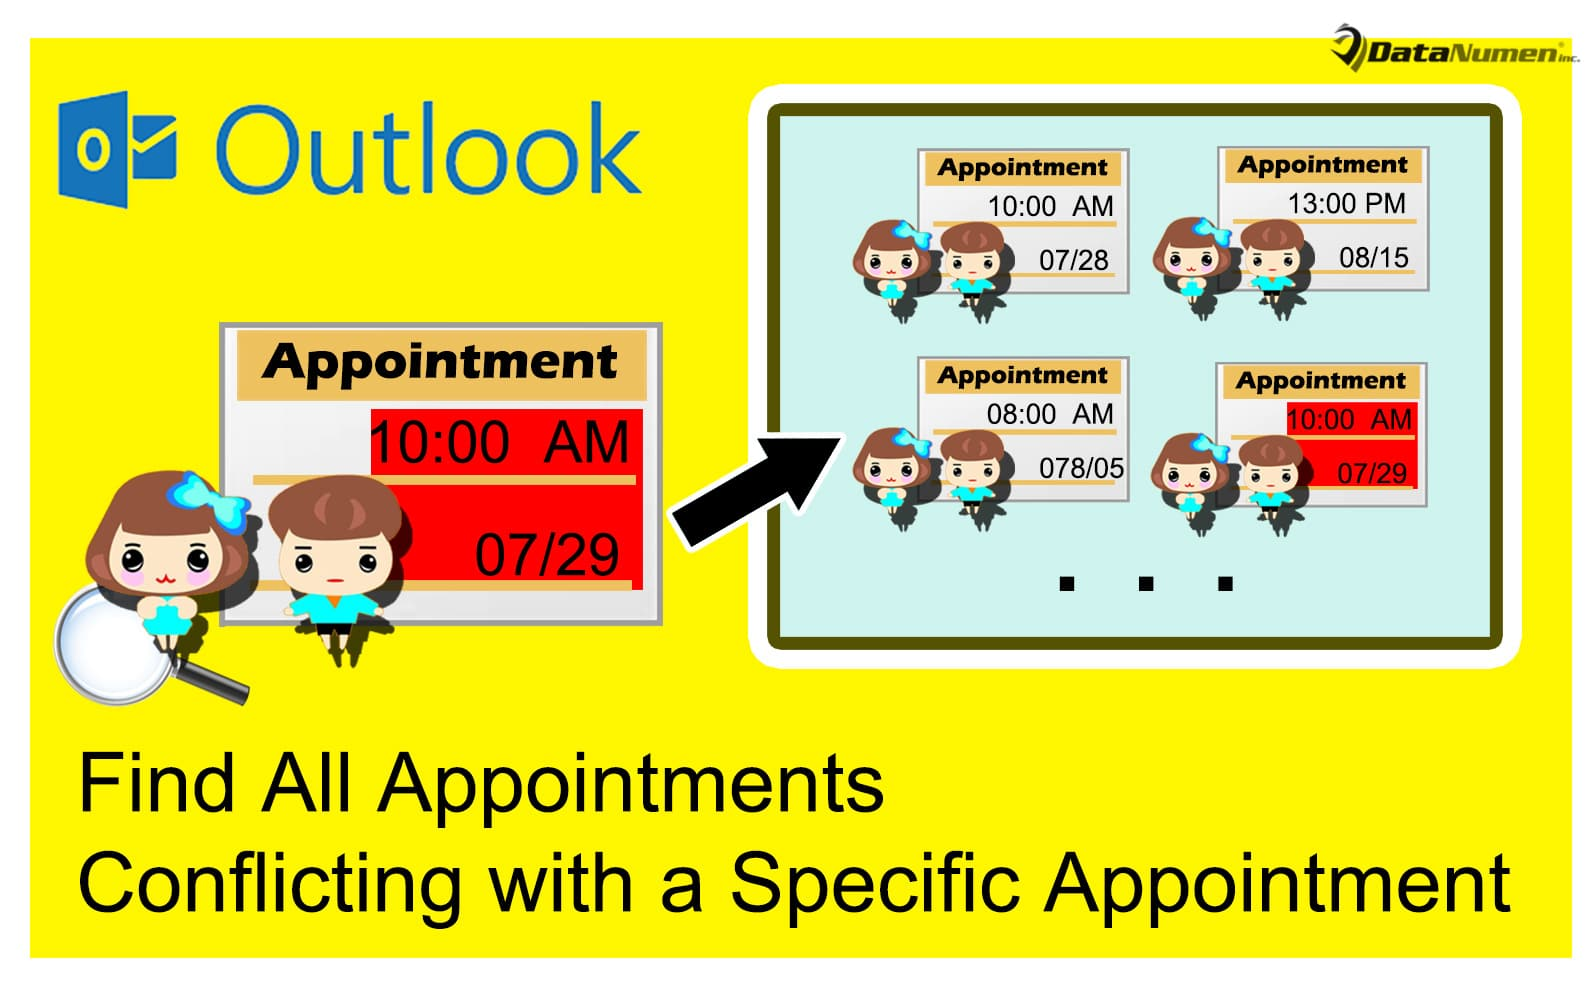 Create A Calendar Appointment From An Email Outlook Create An Add To Calendar Link In An Email Message Outlook How To Quickly Find Out All Other Appointments Conflicting